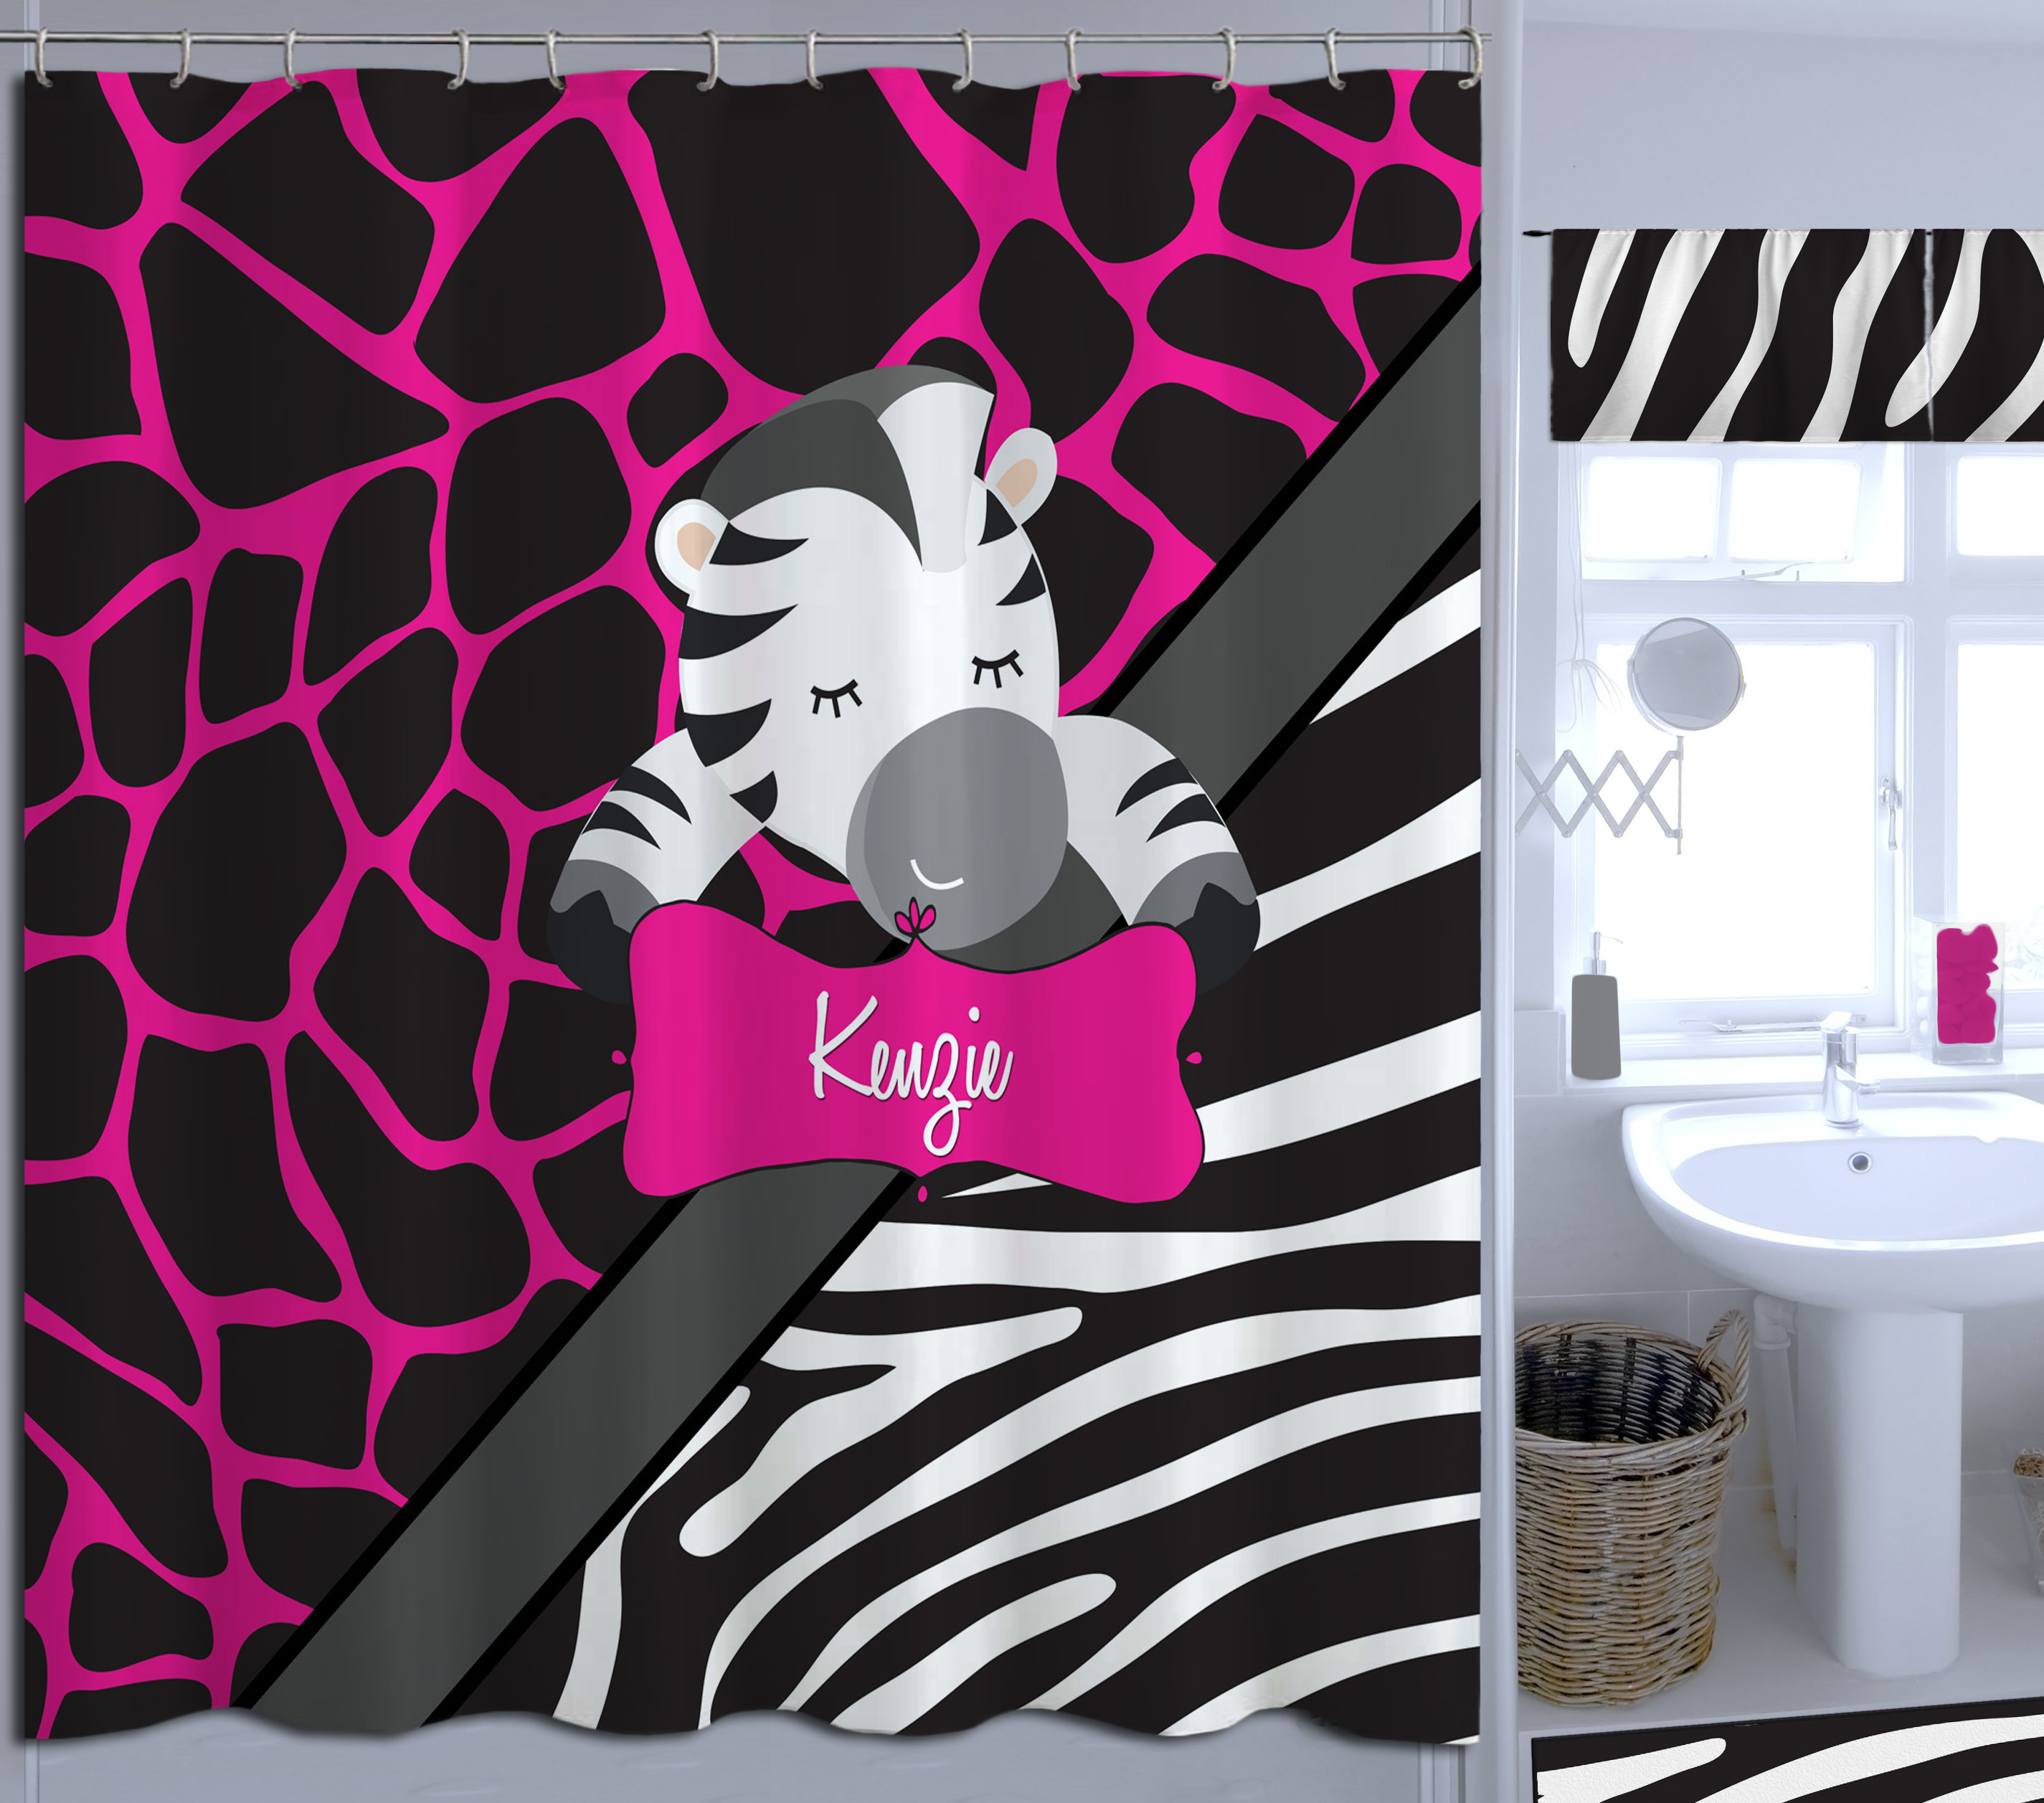 Cute Girly Shower Curtains Personalized Zebra Print Pink Shower Curtain Girly Fabric Shower Curtains 8